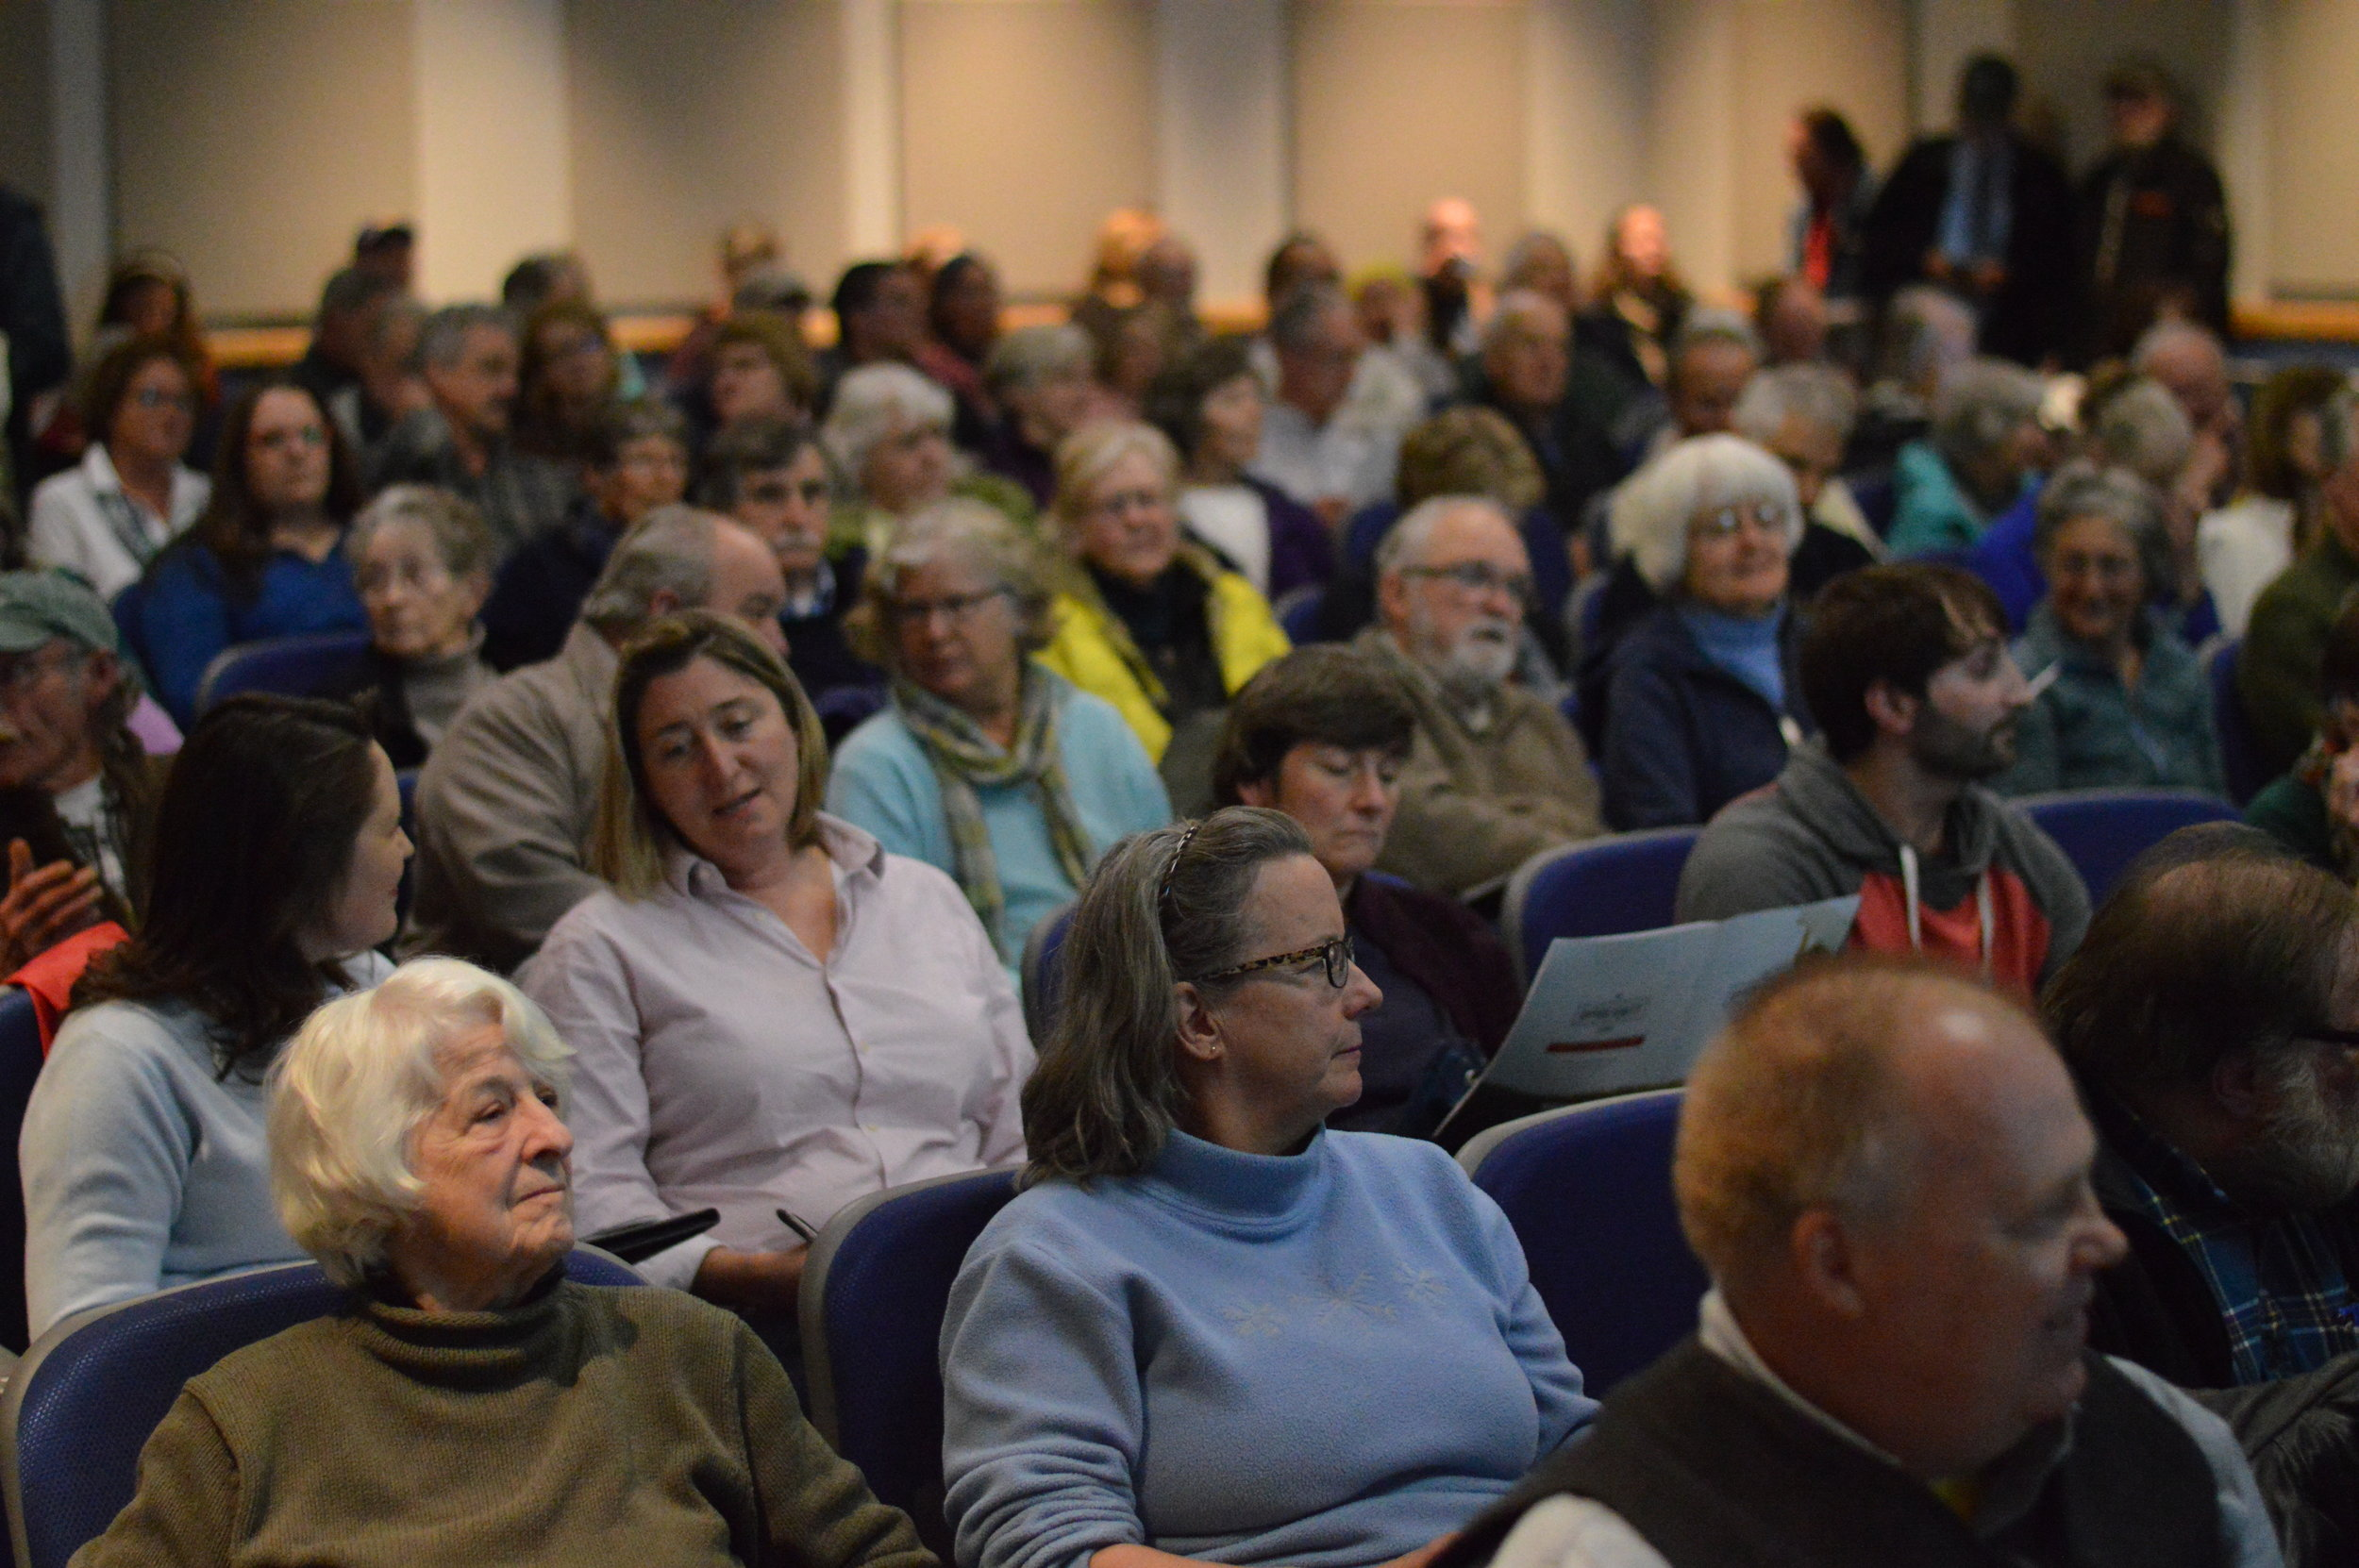 Herbig, Jackson present alternative state budget at packed town hall - Republican Journal April 28, 2017